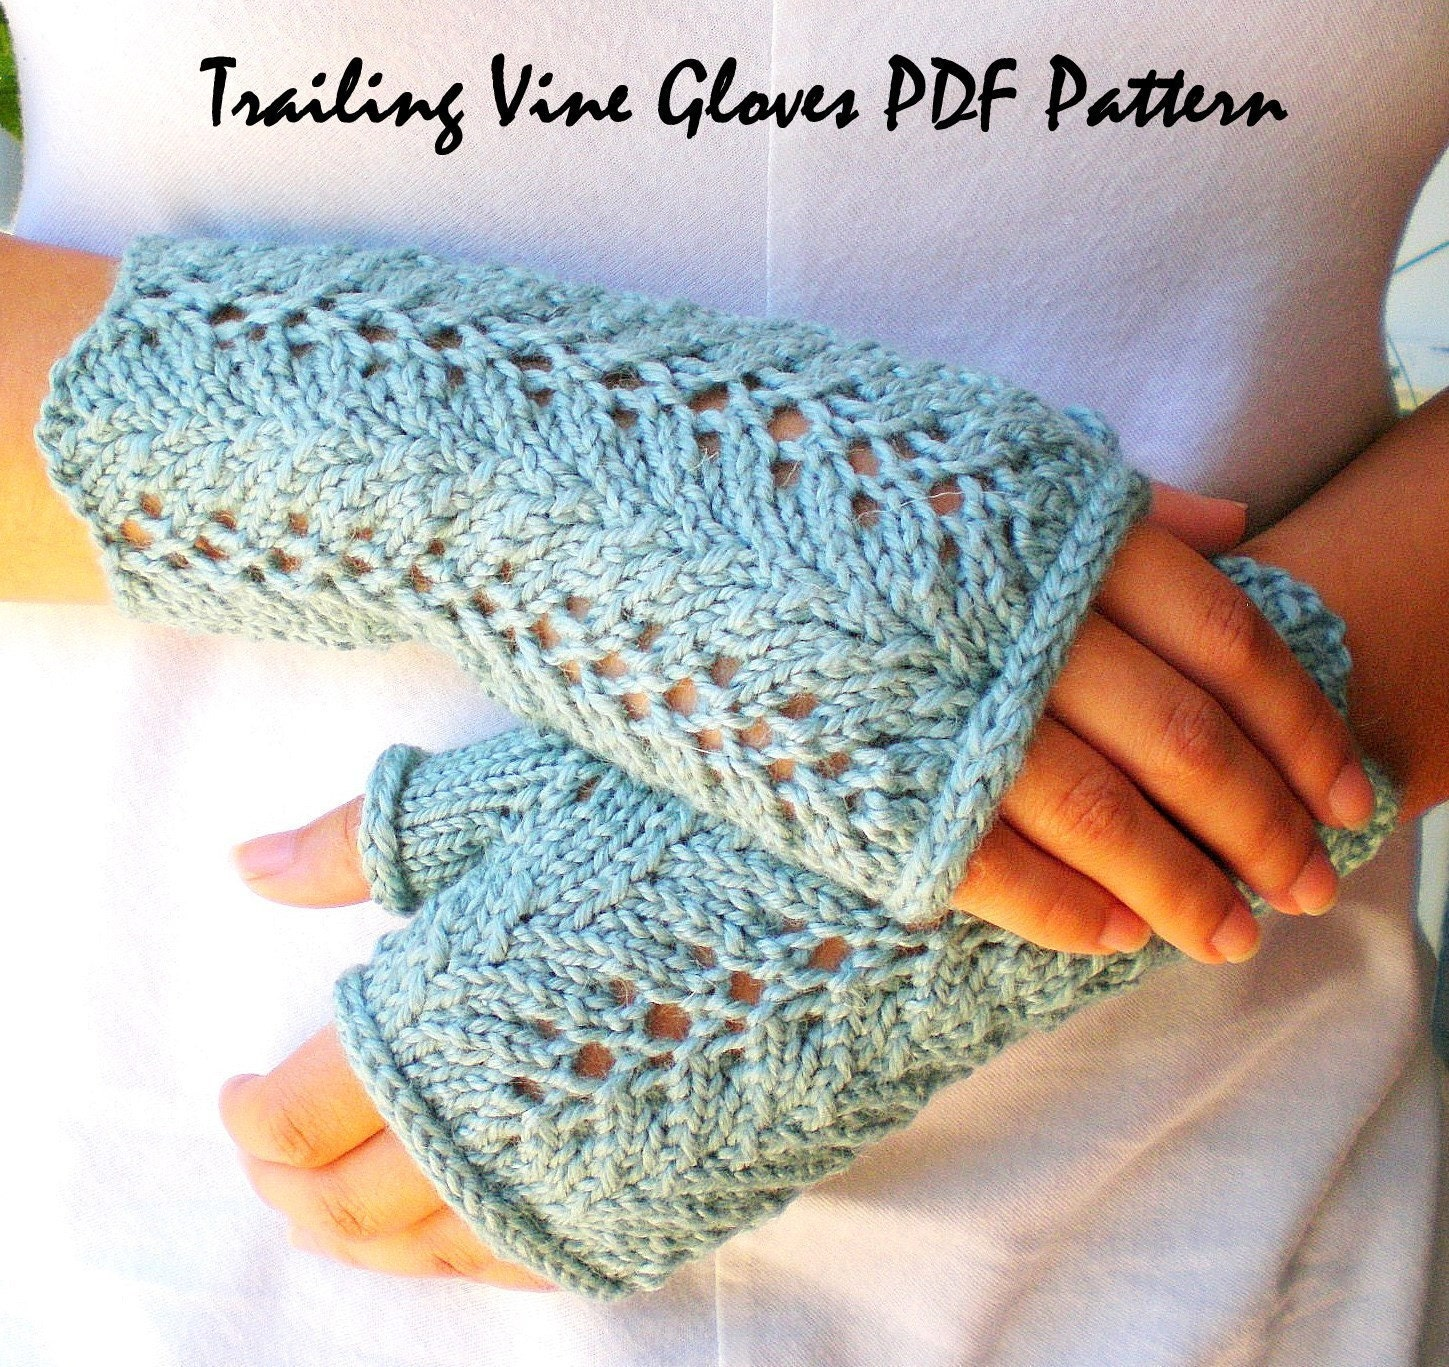 Knitting Pattern For Lace Gloves : PDF Knitting Pattern Lace Fingerless Gloves Trailing Vines